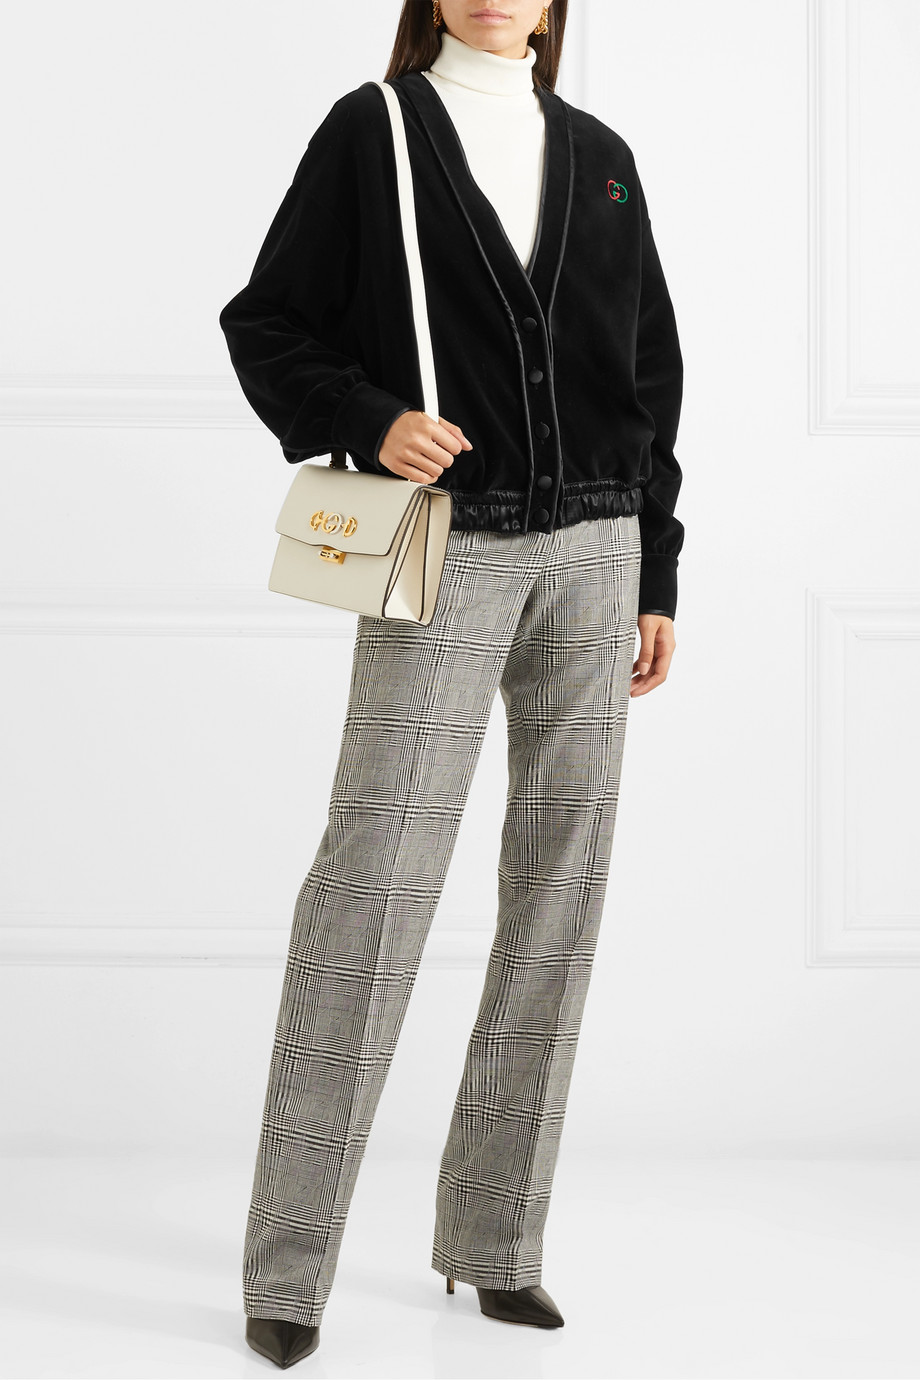 Gucci Satin-trimmed embroidered cotton-blend velvet cardigan